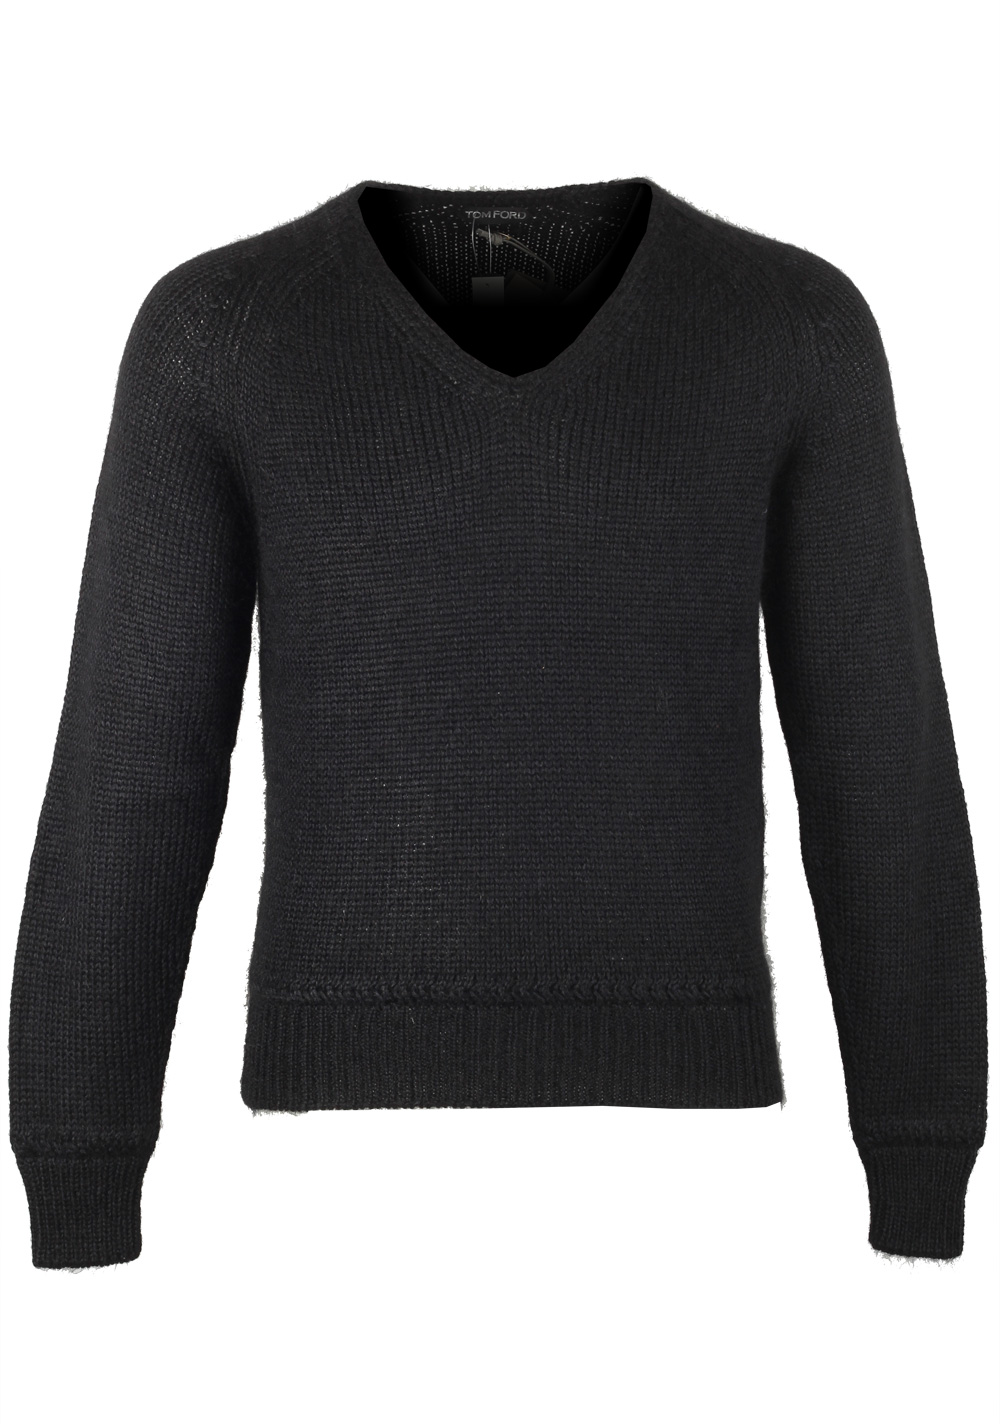 TOM FORD Black V Neck Sweater Size 48 / 38R U.S. In Silk Mohair | Costume Limité